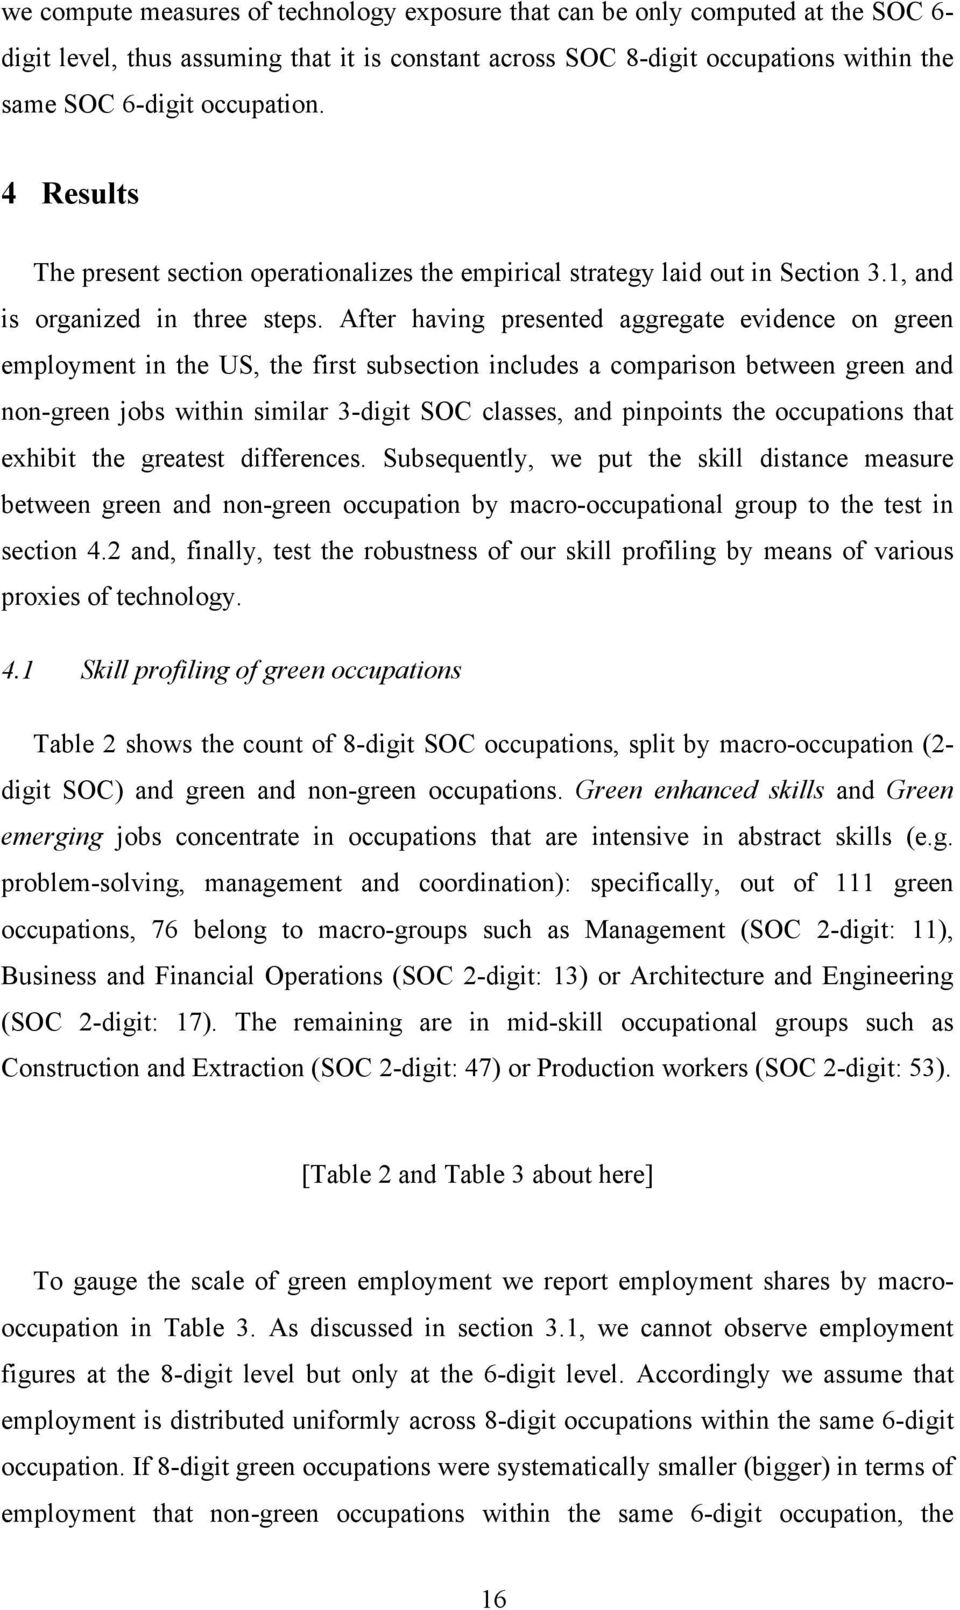 After having presented aggregate evidence on green employment in the US, the first subsection includes a comparison between green and non-green jobs within similar 3-digit SOC classes, and pinpoints